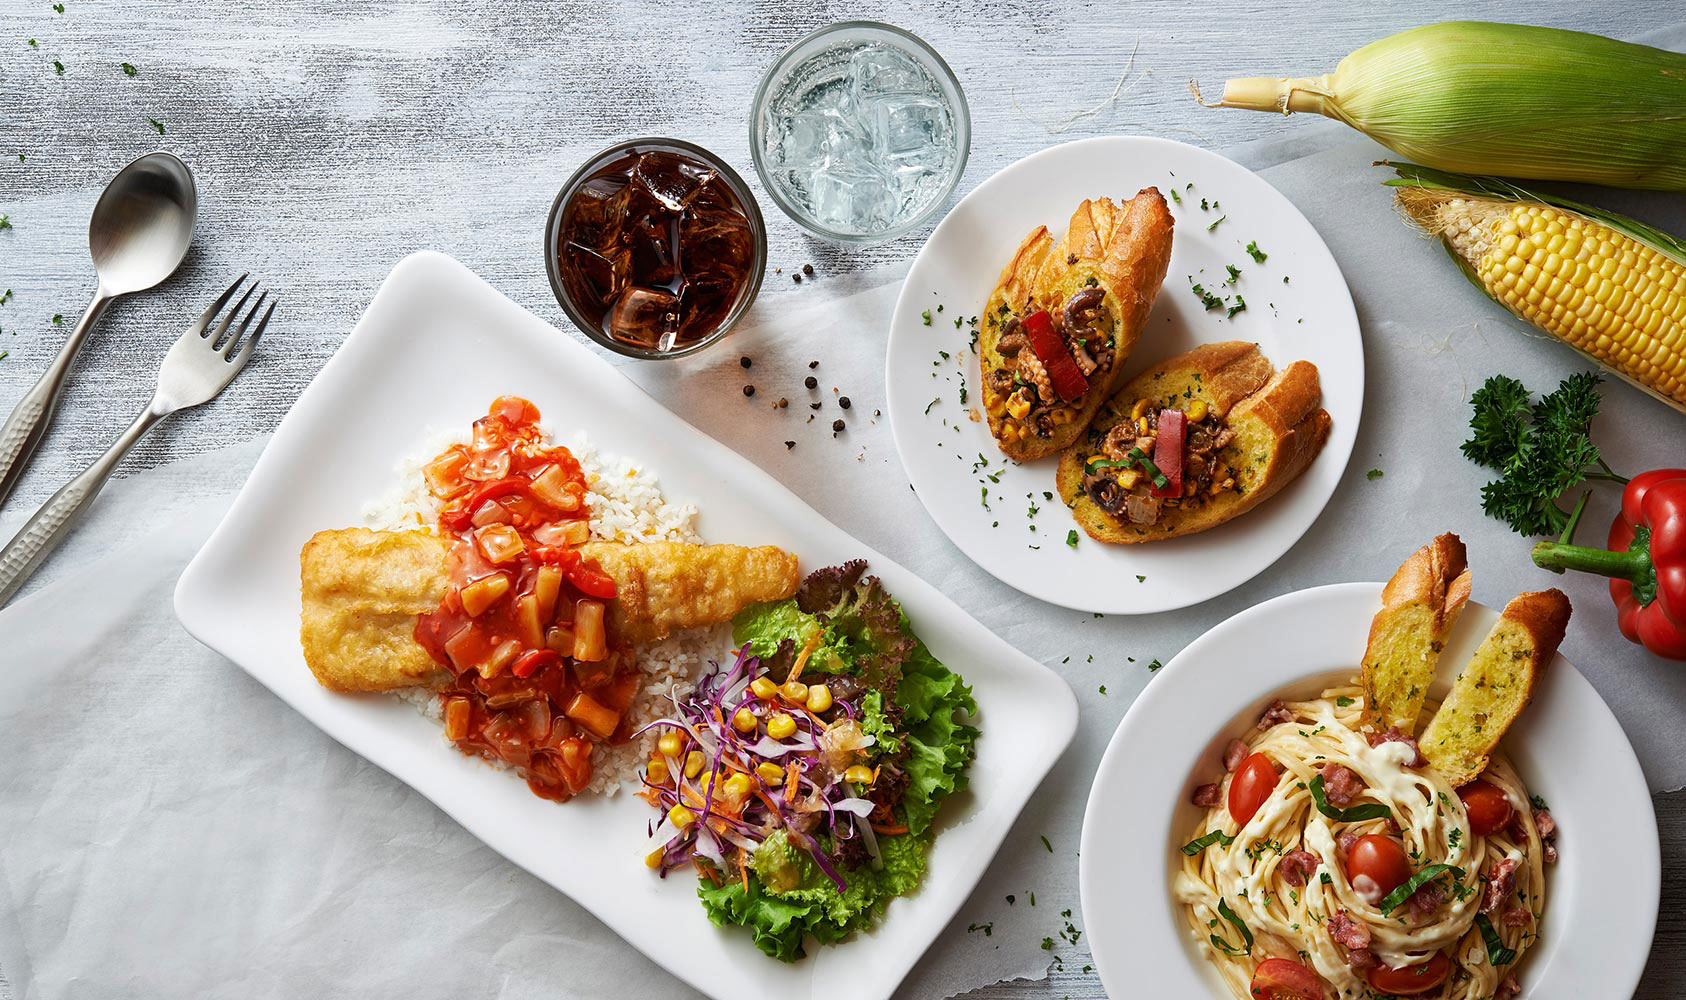 050_F096_food_shot_Pizza_Hut_Vietnam_BITE_Studio_Wing_Chan